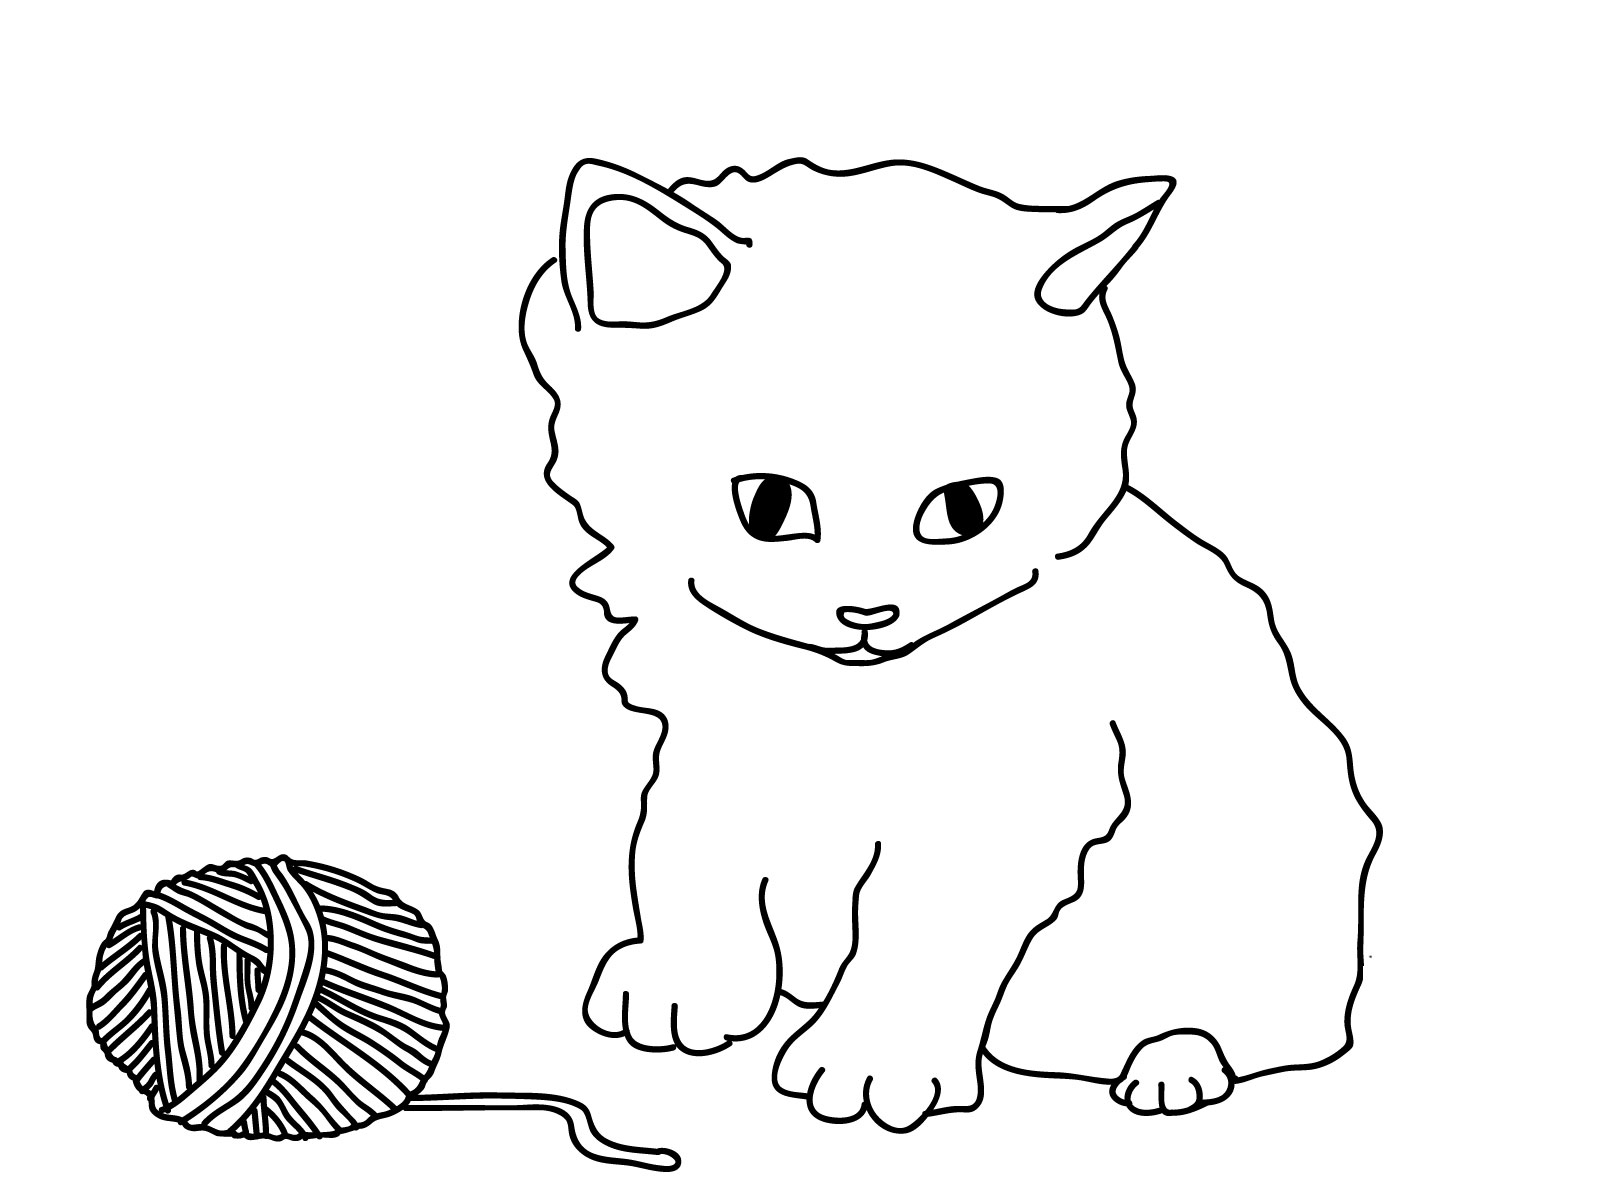 kitten printout coloring pages - photo#43